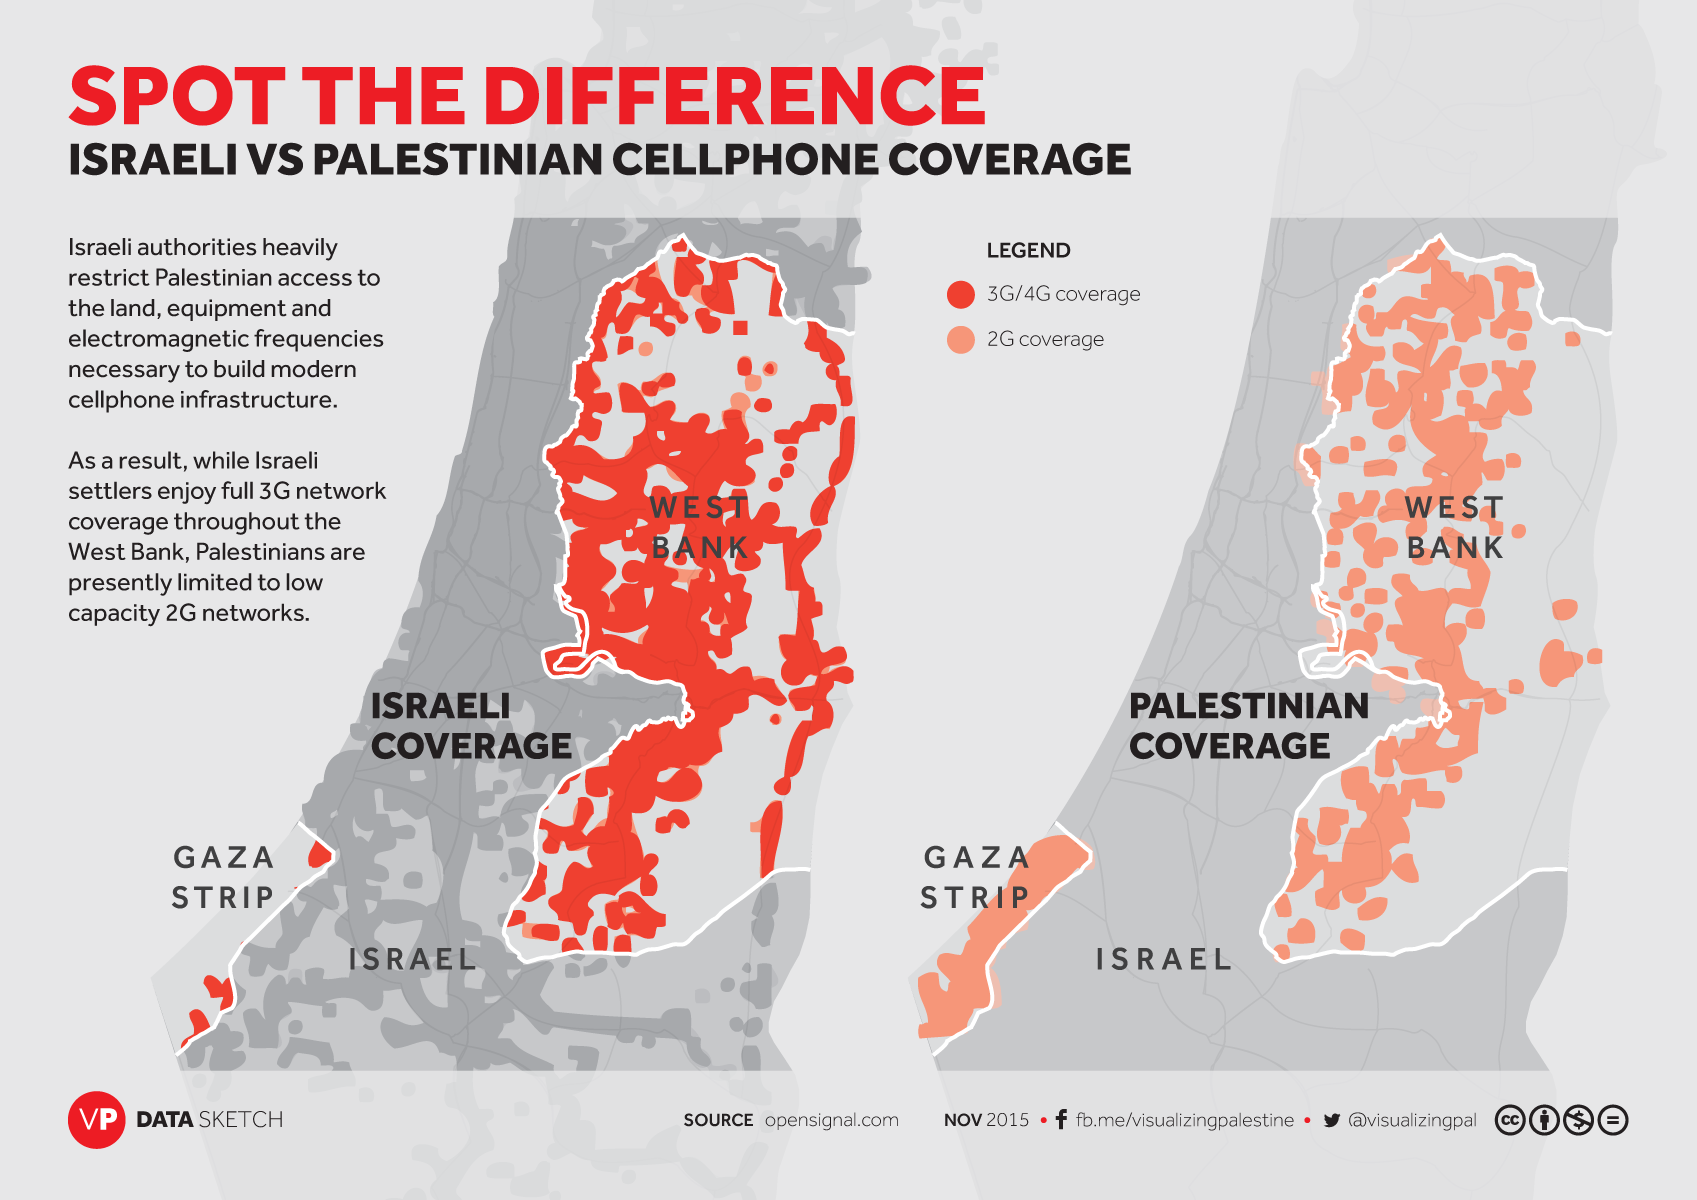 Visualizing Palestine's graphic shows the difference between coverage in Israel and Palestine